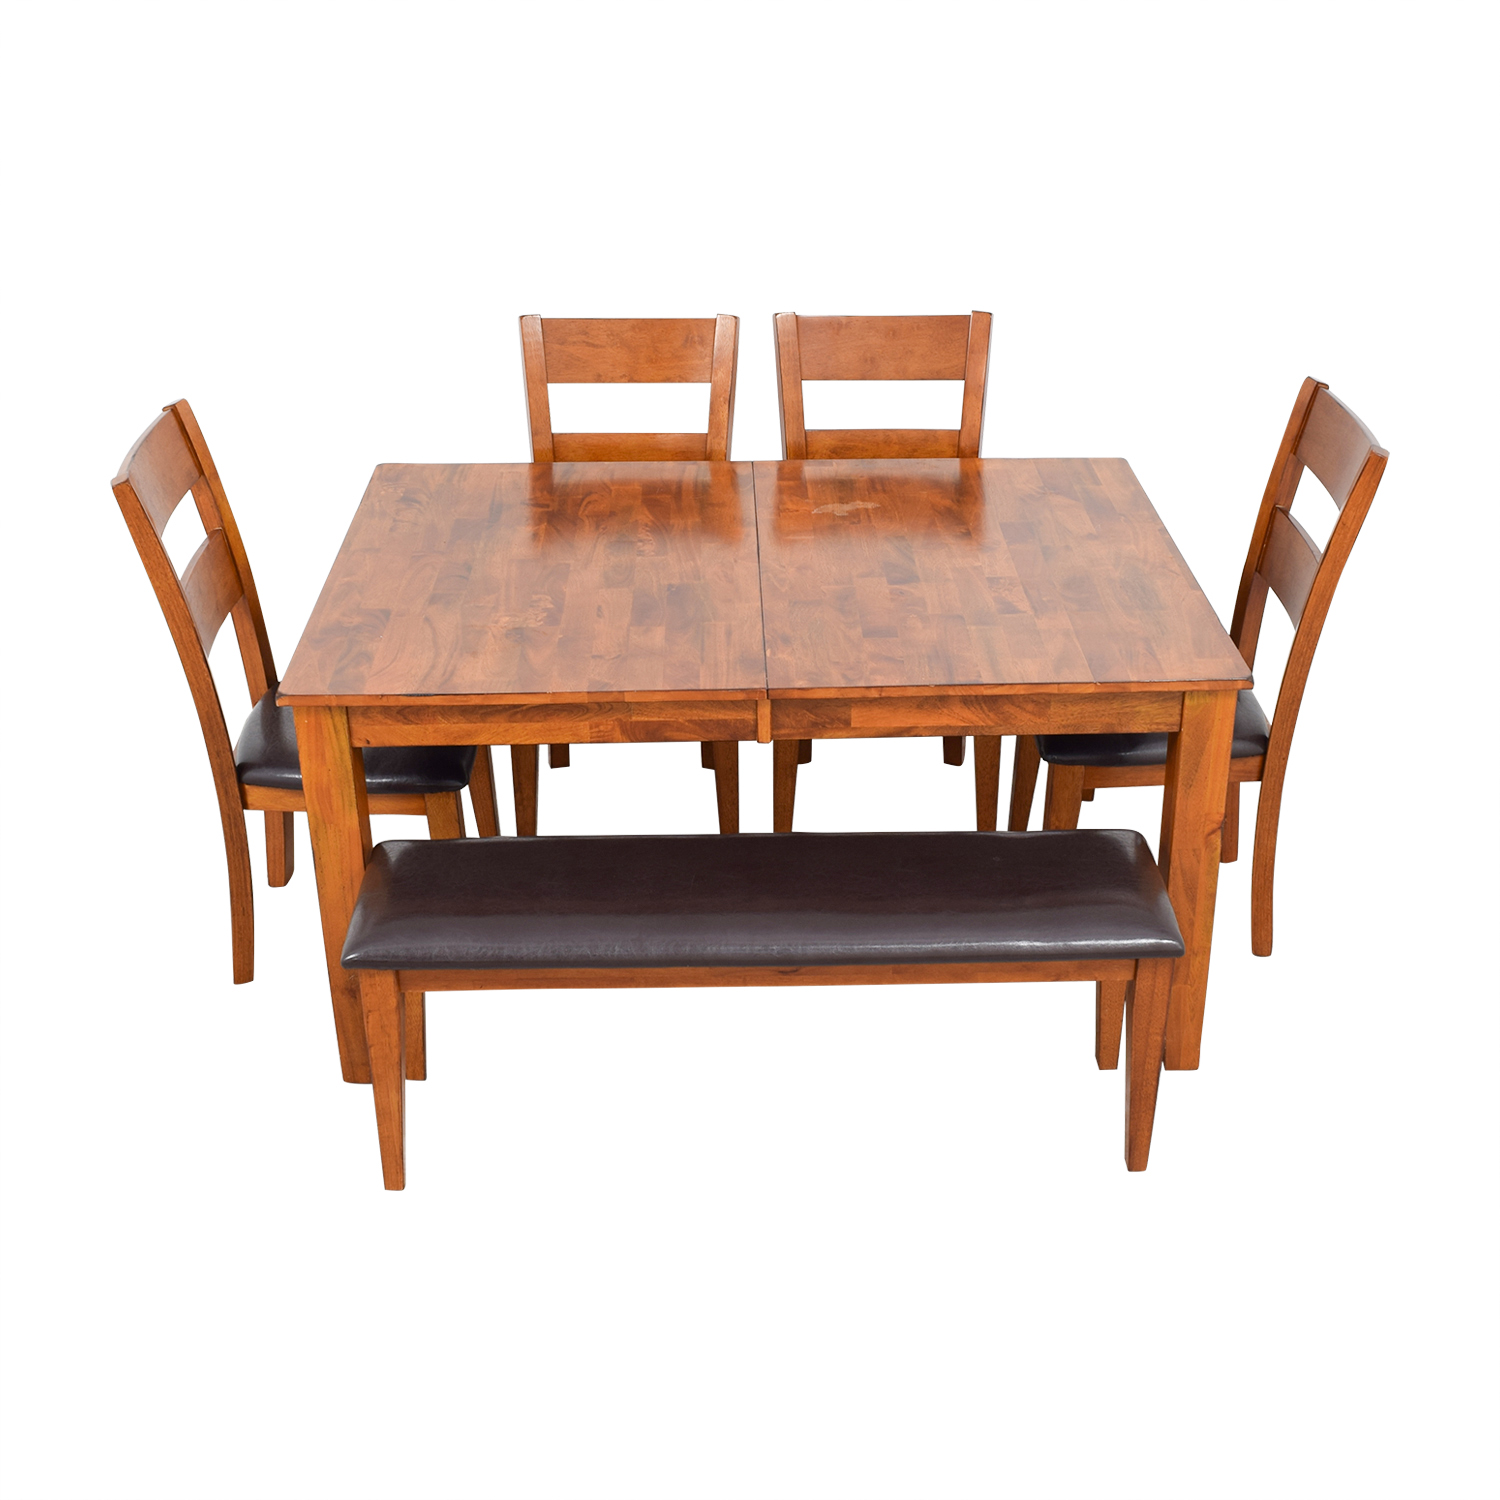 Steve Silver Co Steve Silver Co Mango Butterfly Leaf Dining Table with Chairs and Bench Dining Sets